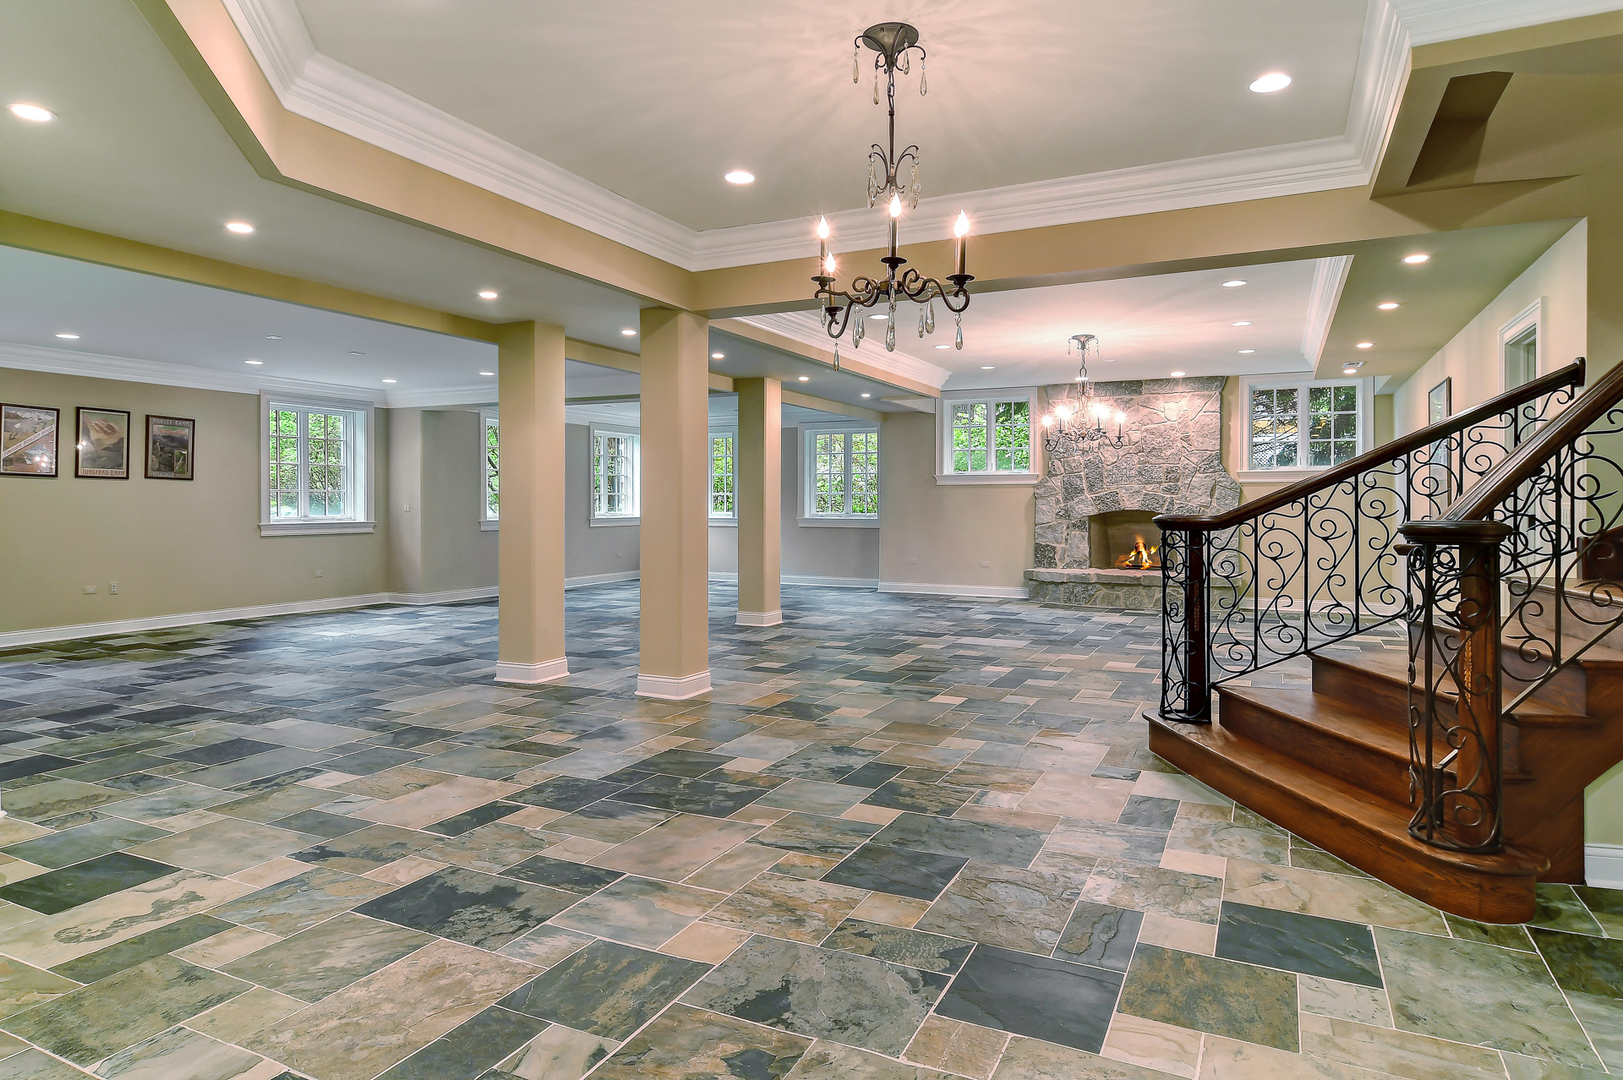 30 South County Line, Hinsdale, Illinois, 60521